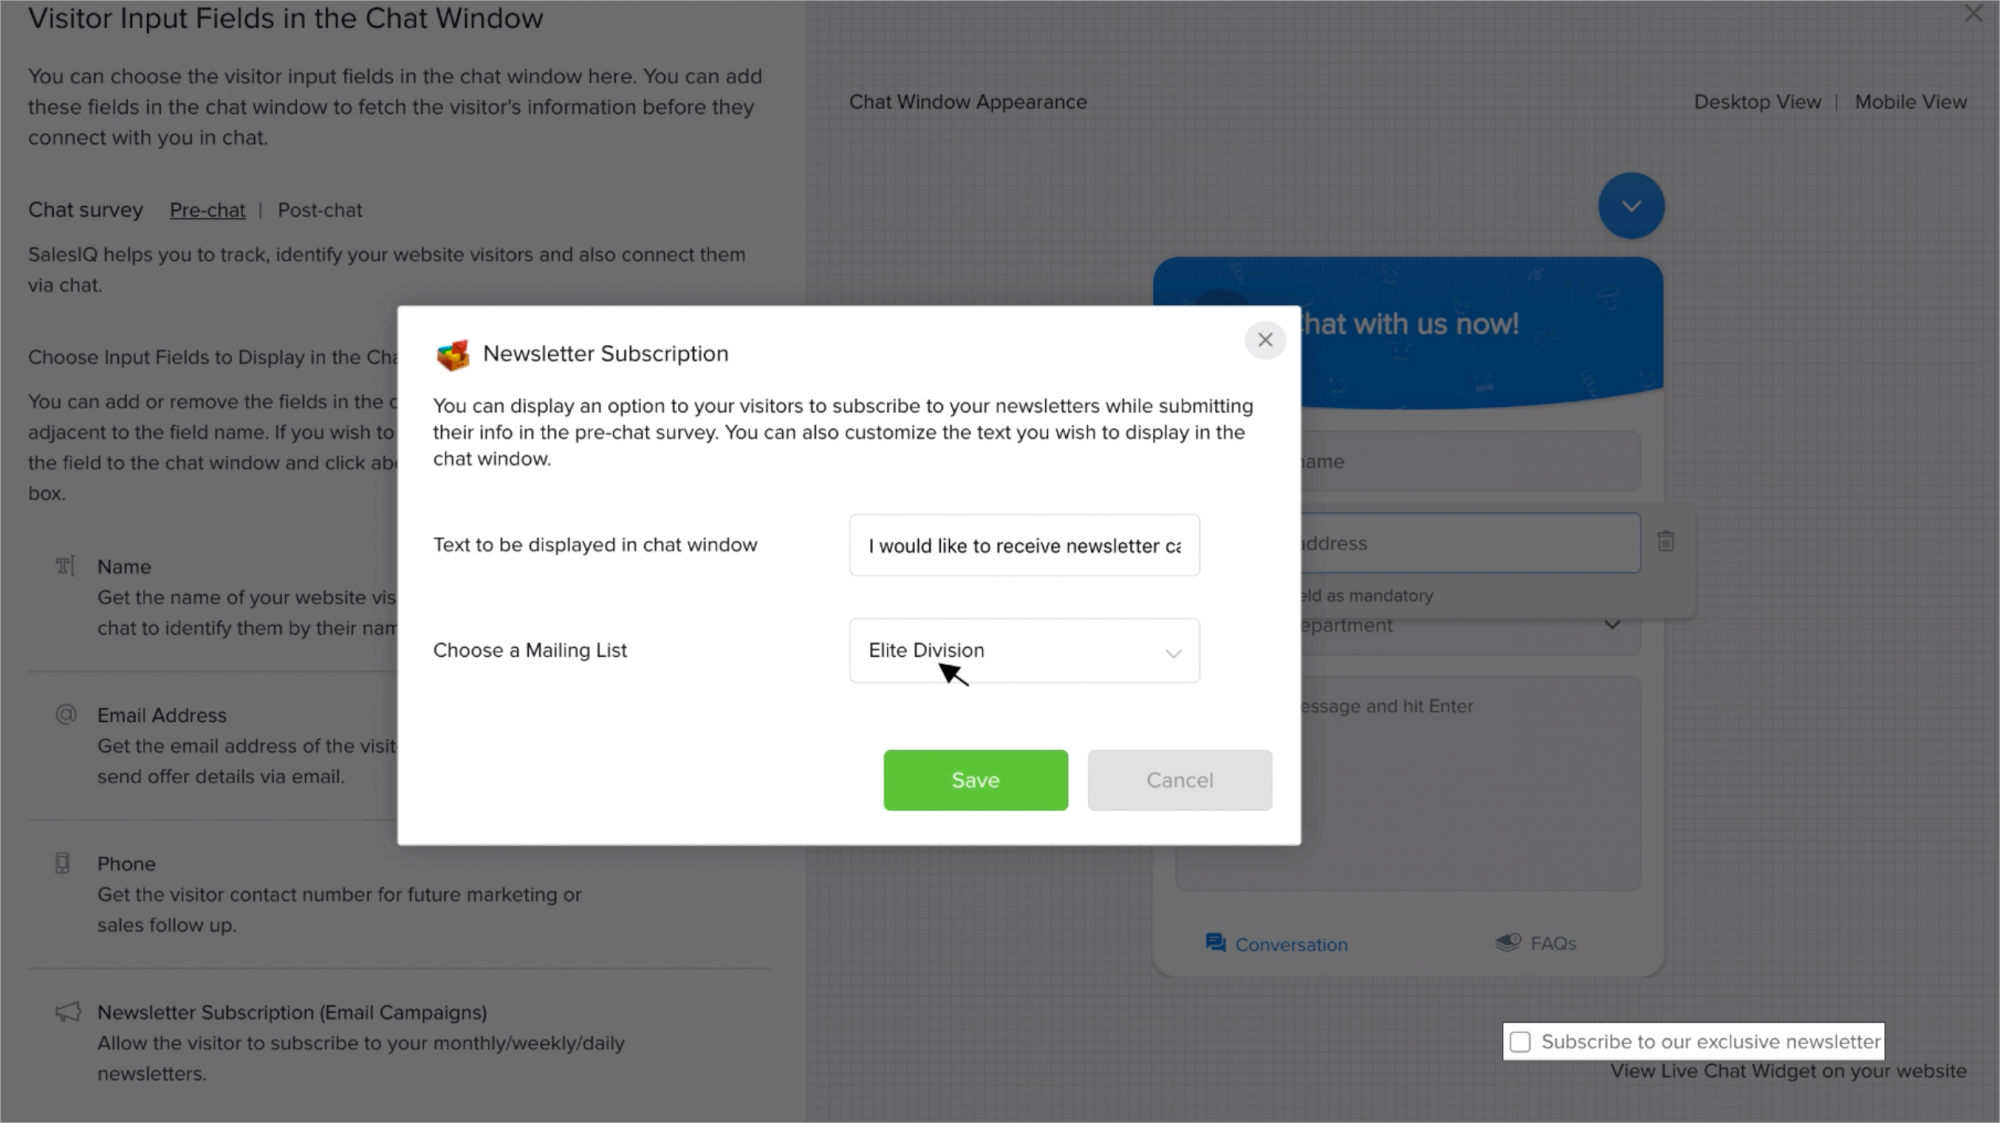 How to enable the newsletter subscription option in the chat